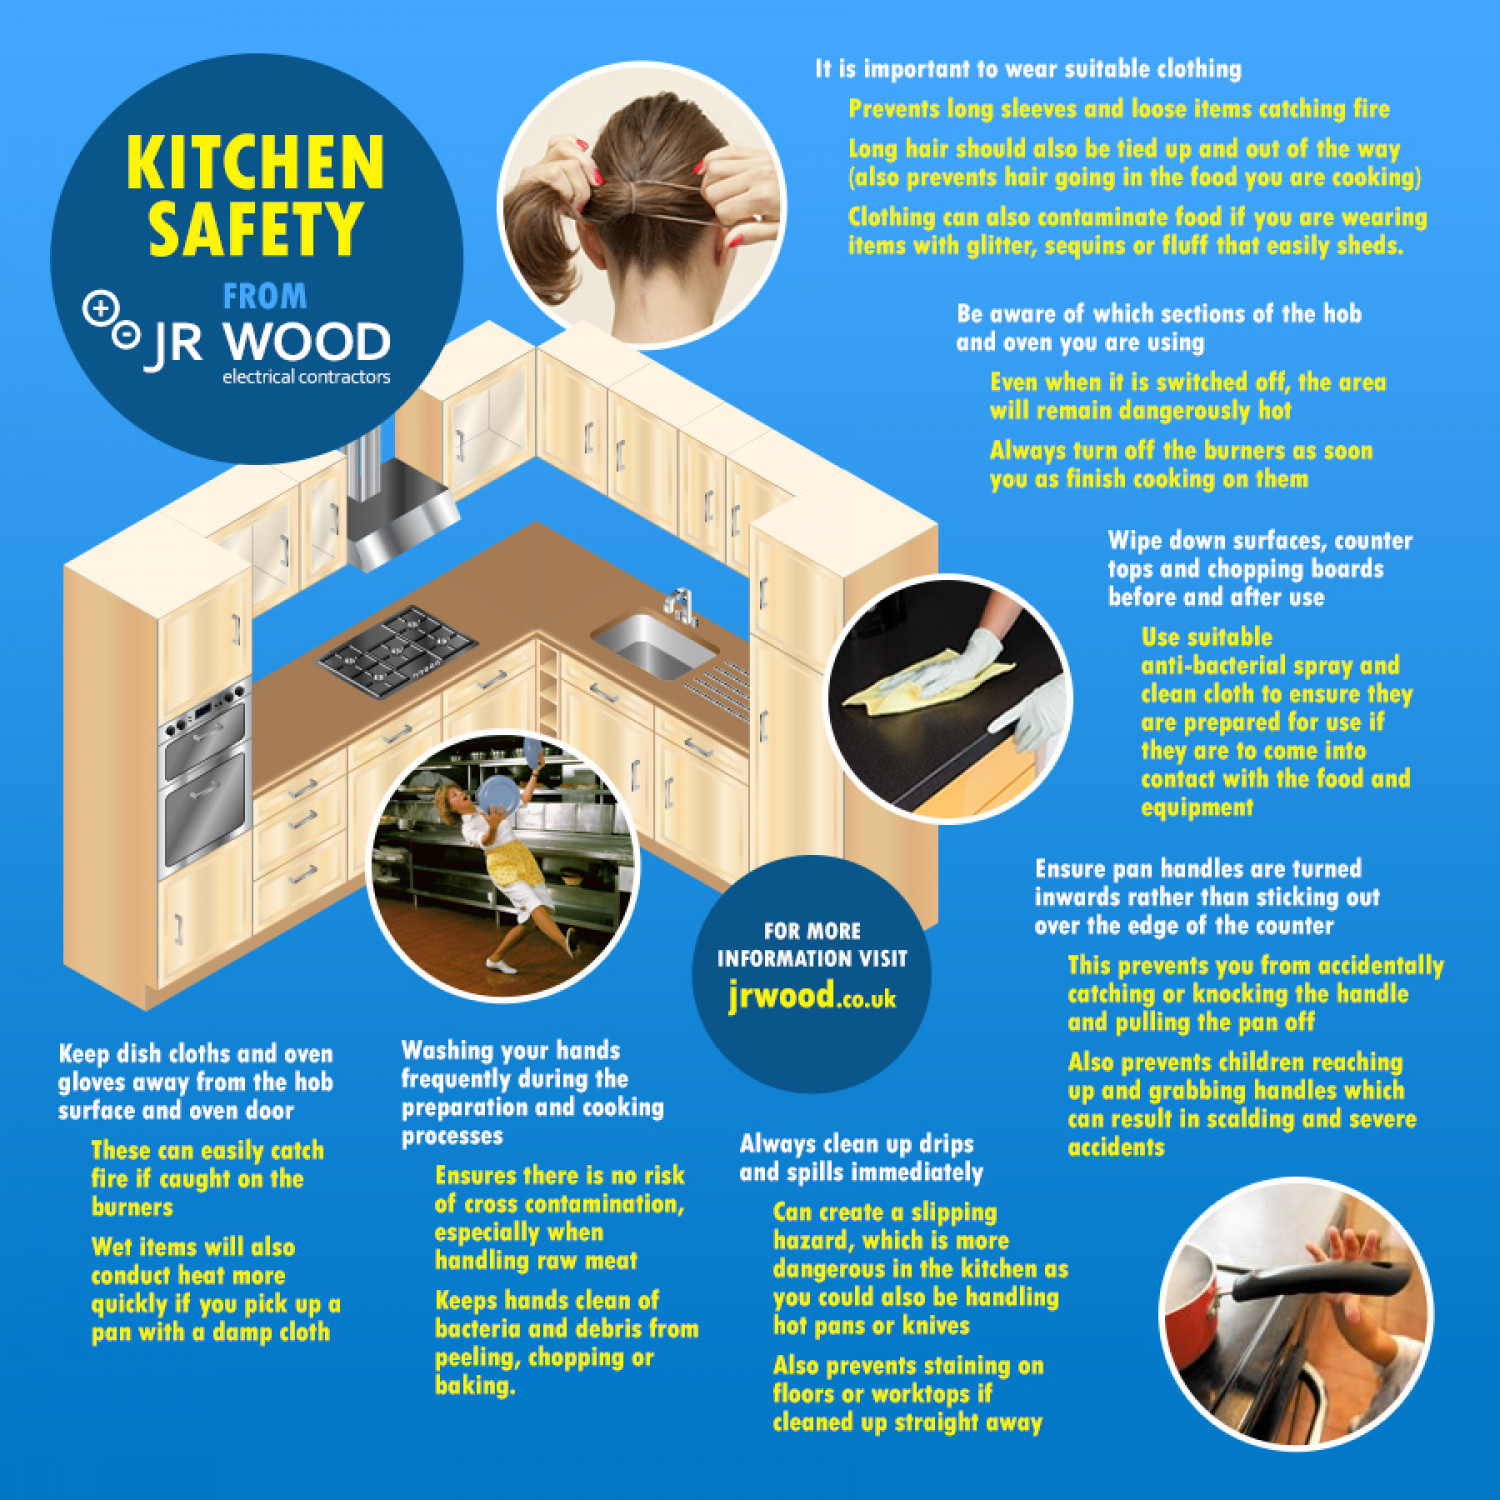 Kitchen Safety Guide - JR Wood | Visual.ly